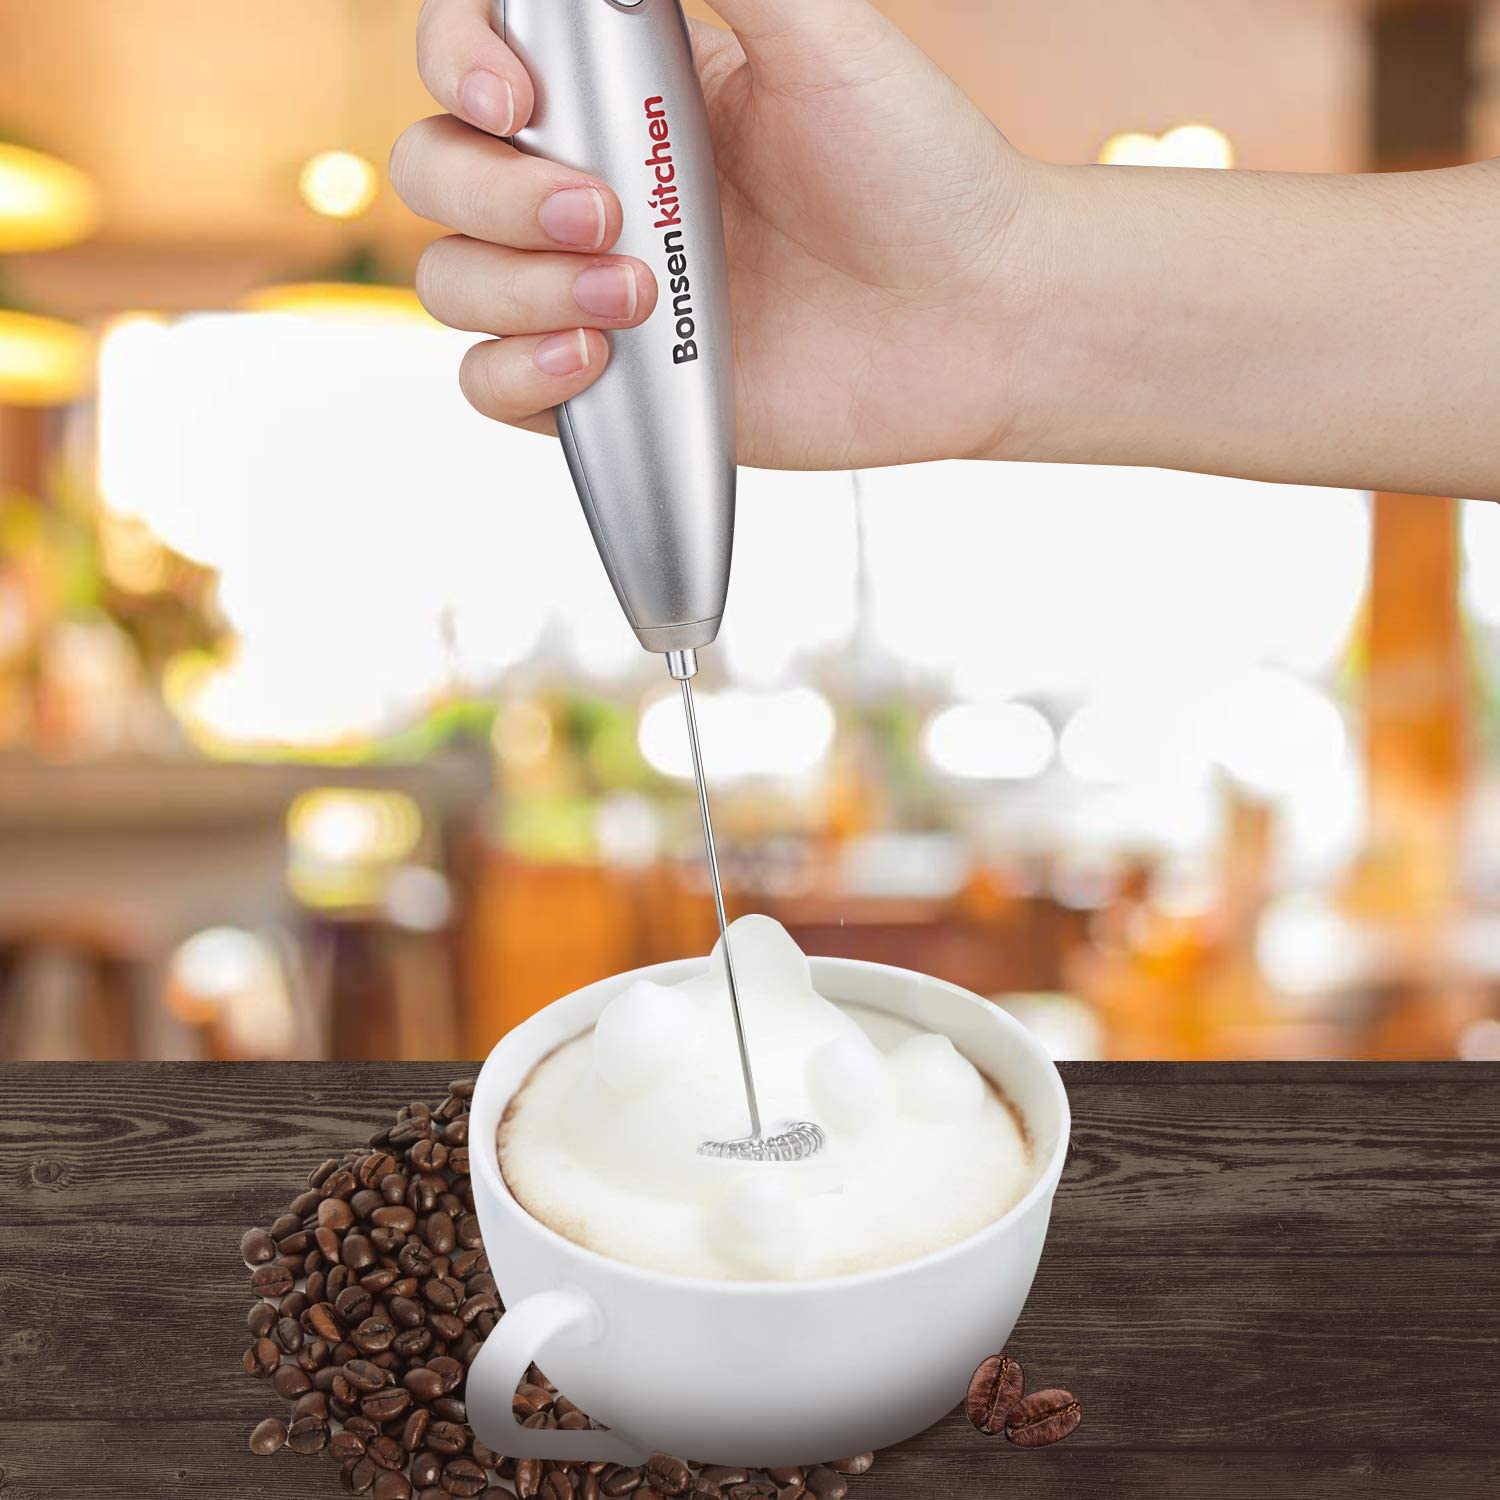 Bonsenkitchen Electric Milk Frother Automatic Foam Maker for Coffee Cappuccino Lattes Perfect Gift for Coffee Lovers Hot Chocolate